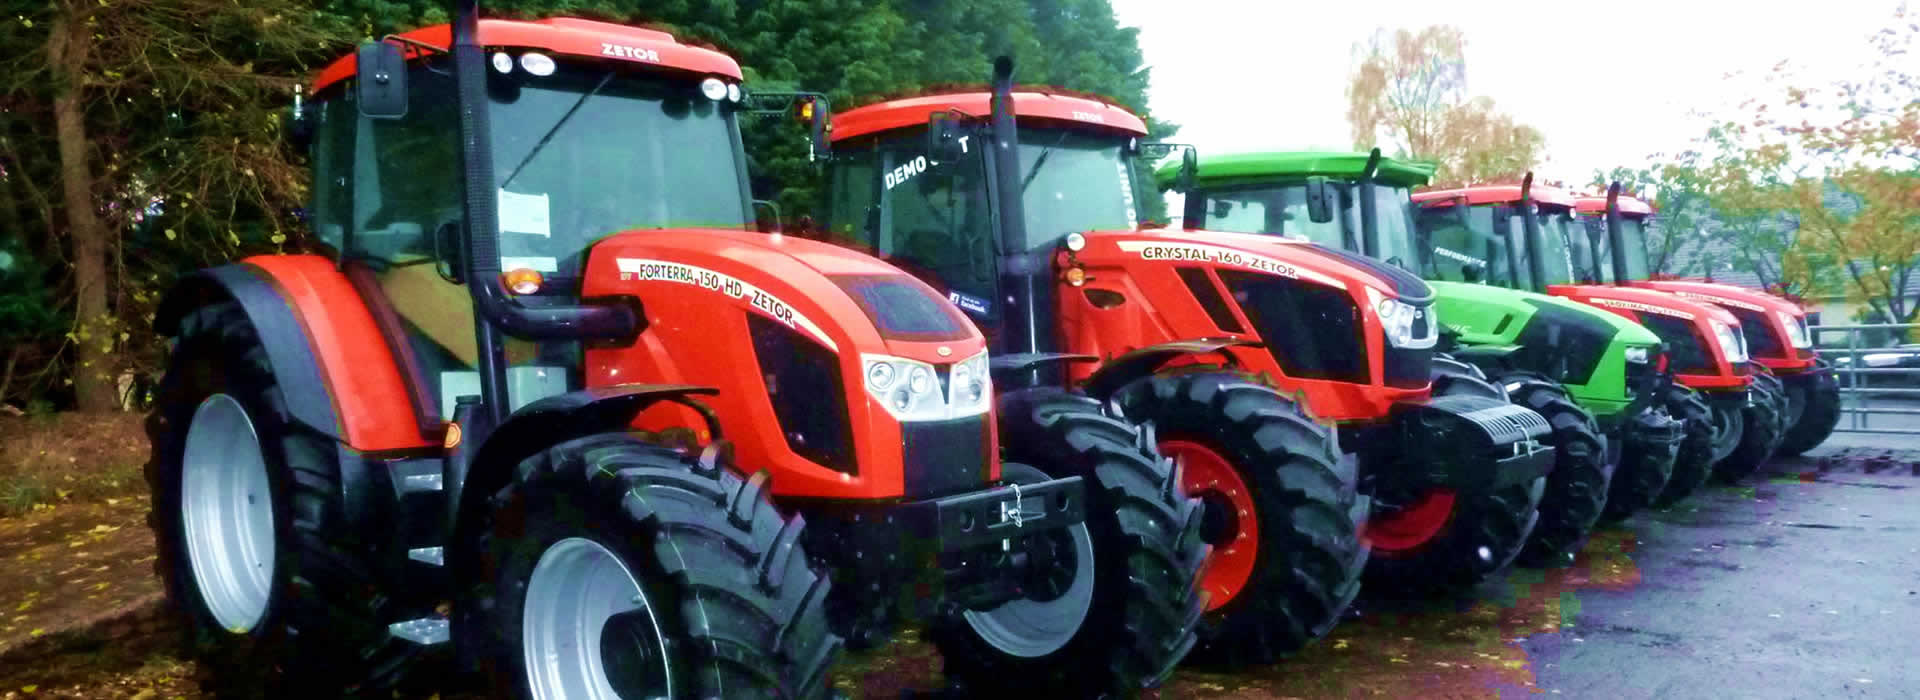 Tractor Sales & Equipment